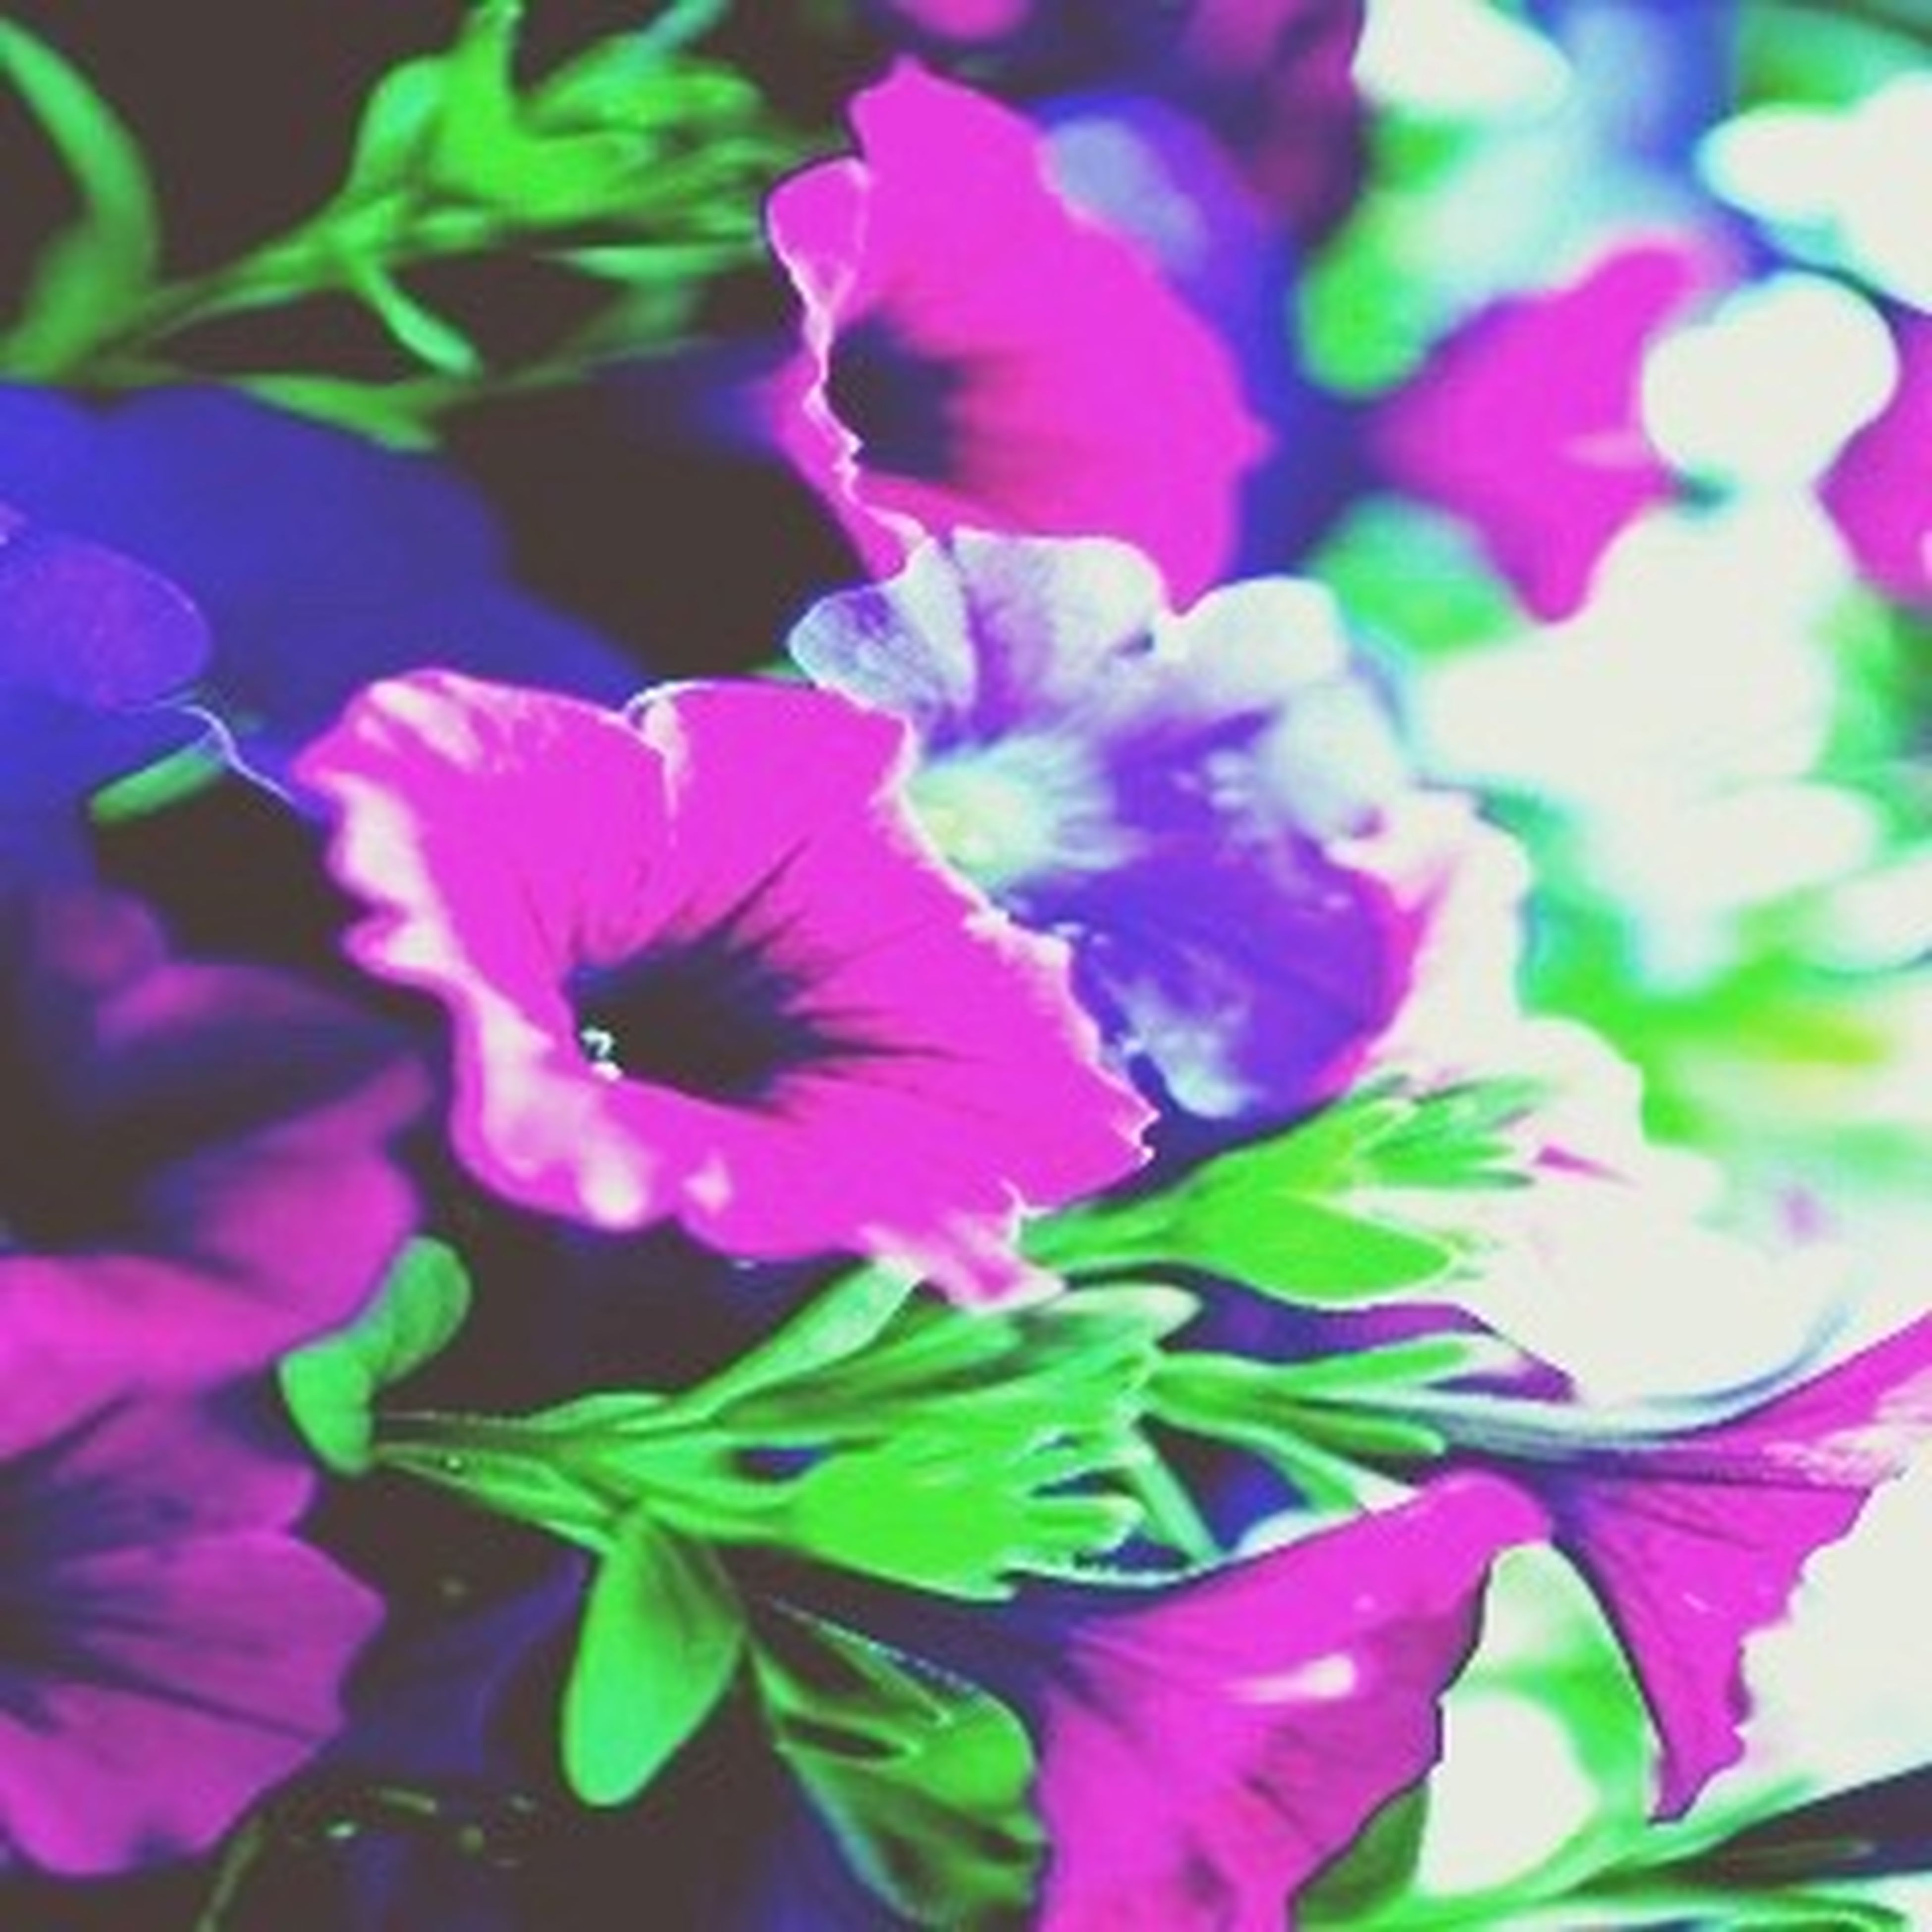 flower, freshness, petal, growth, fragility, beauty in nature, flower head, leaf, close-up, plant, blooming, pink color, nature, focus on foreground, purple, in bloom, park - man made space, blossom, day, outdoors